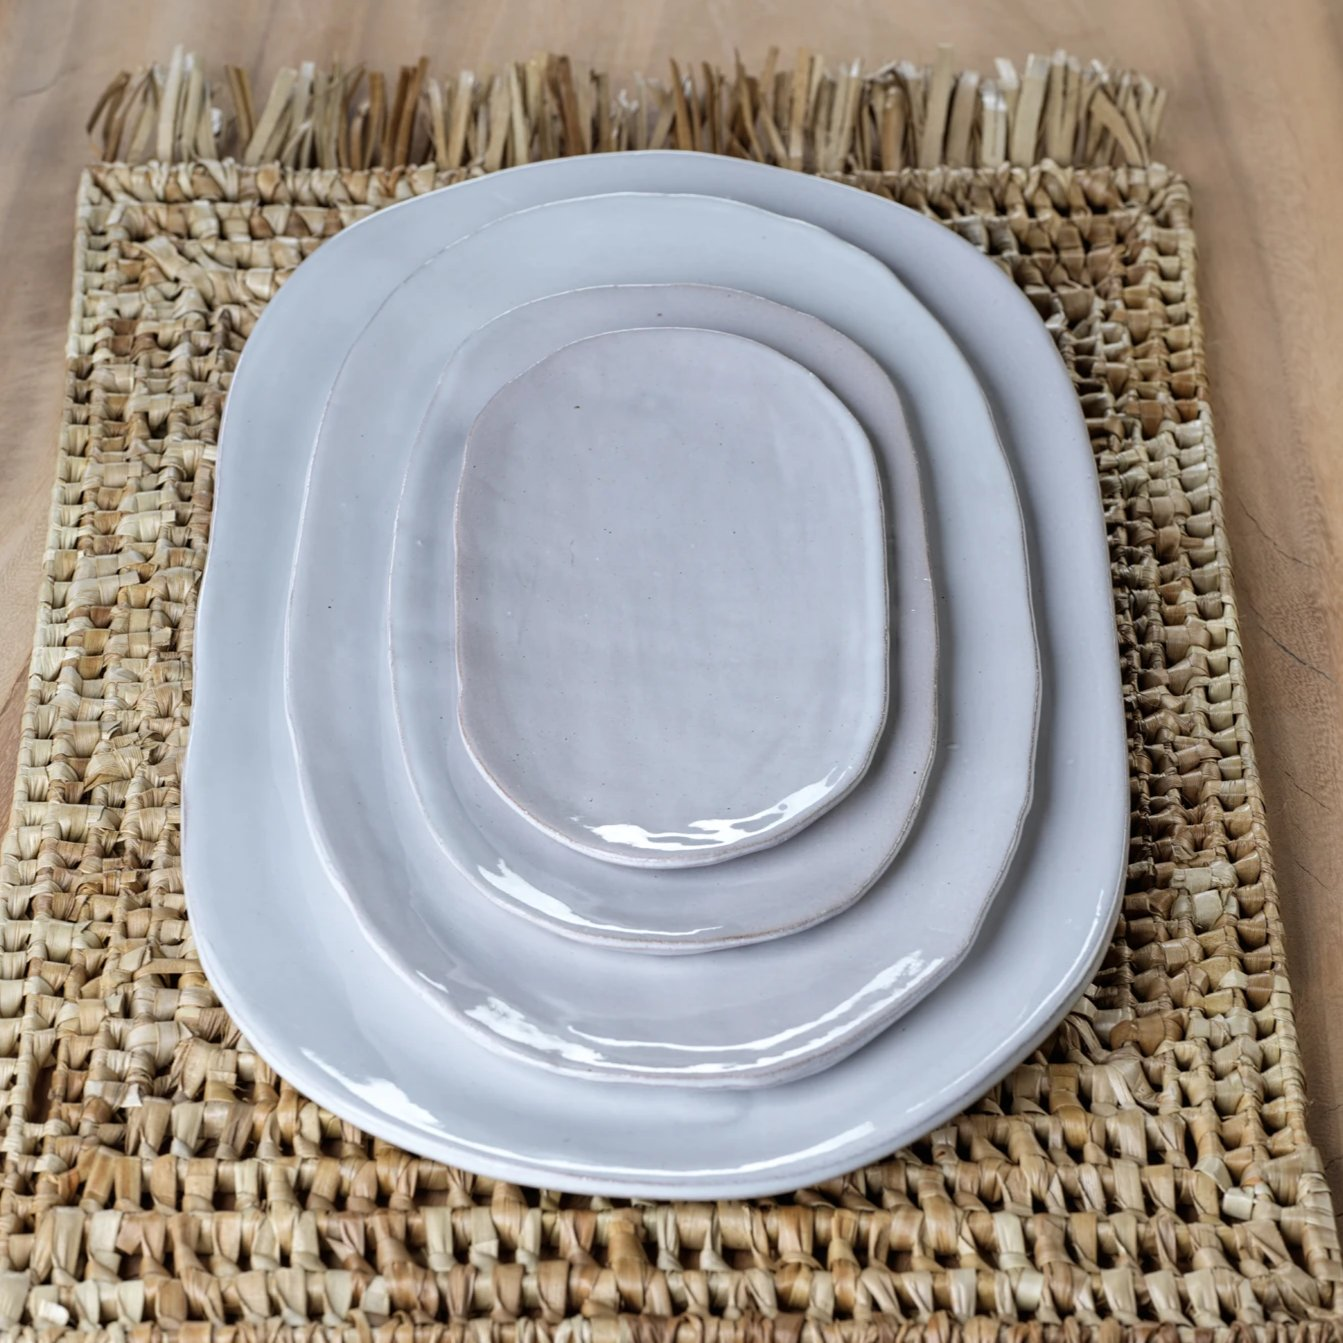 Nok Terracotta Oval Tableware - CARLYLE AVENUE